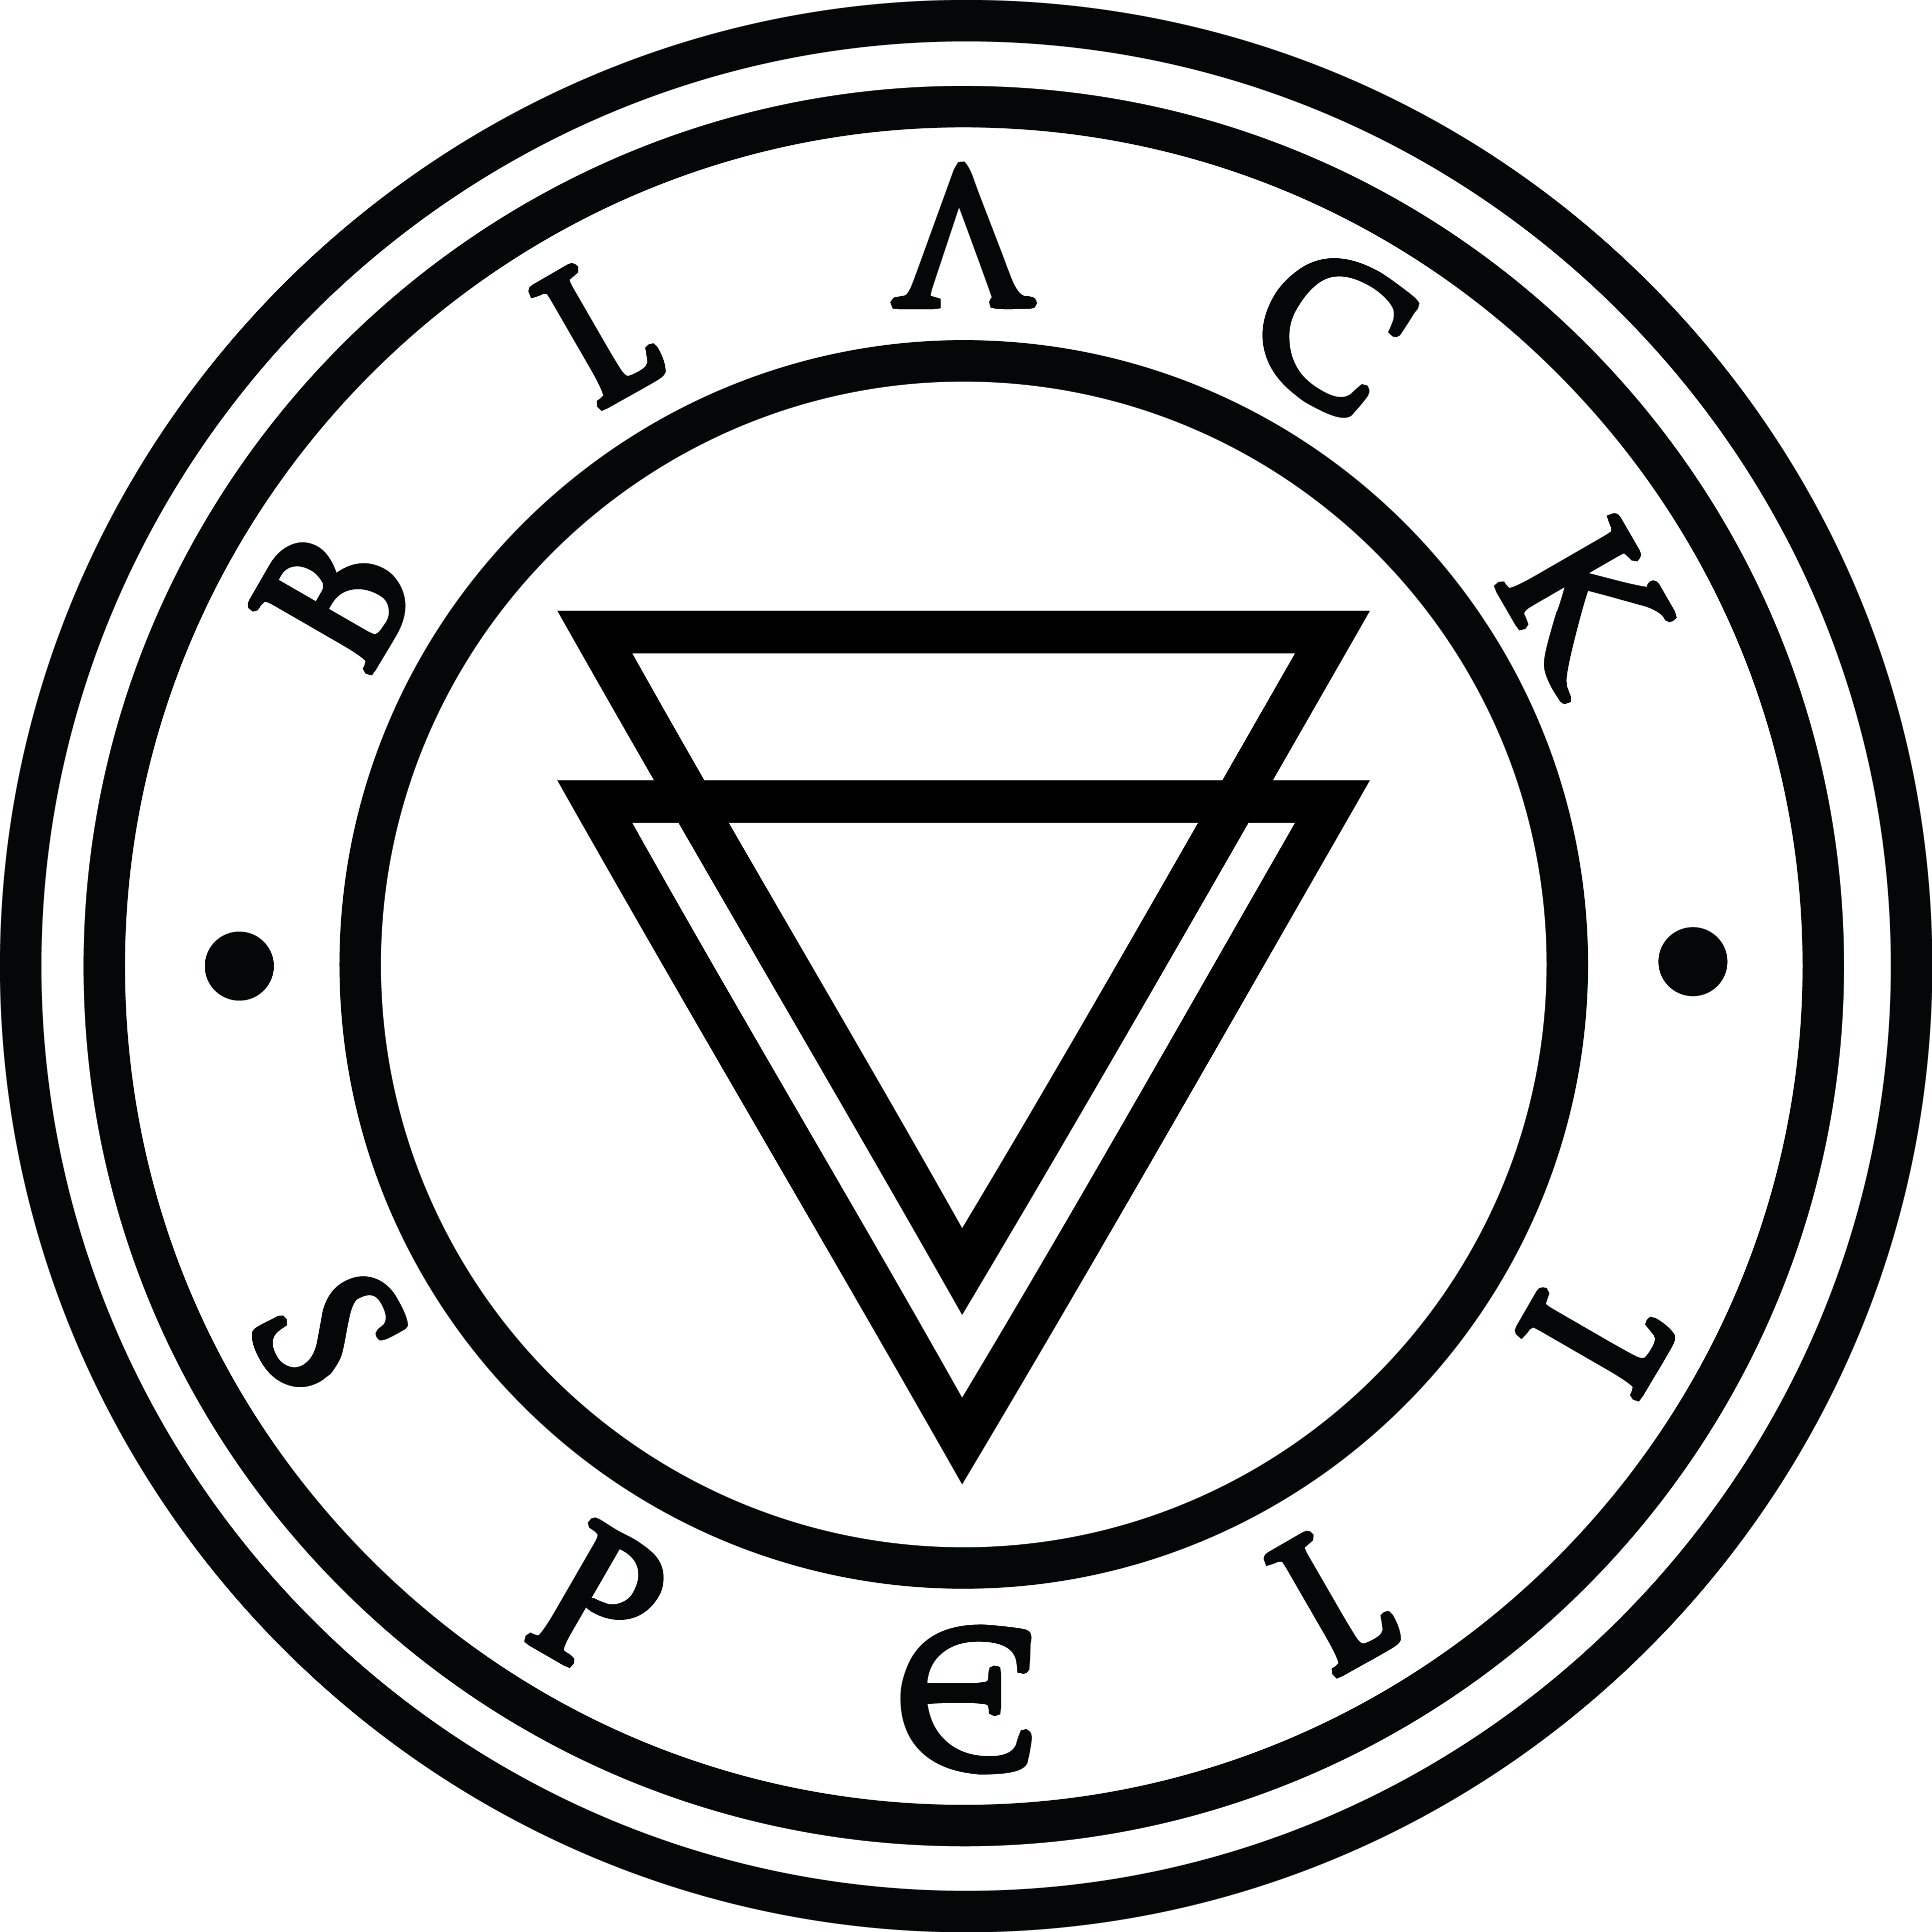 black_spell_circle_logo